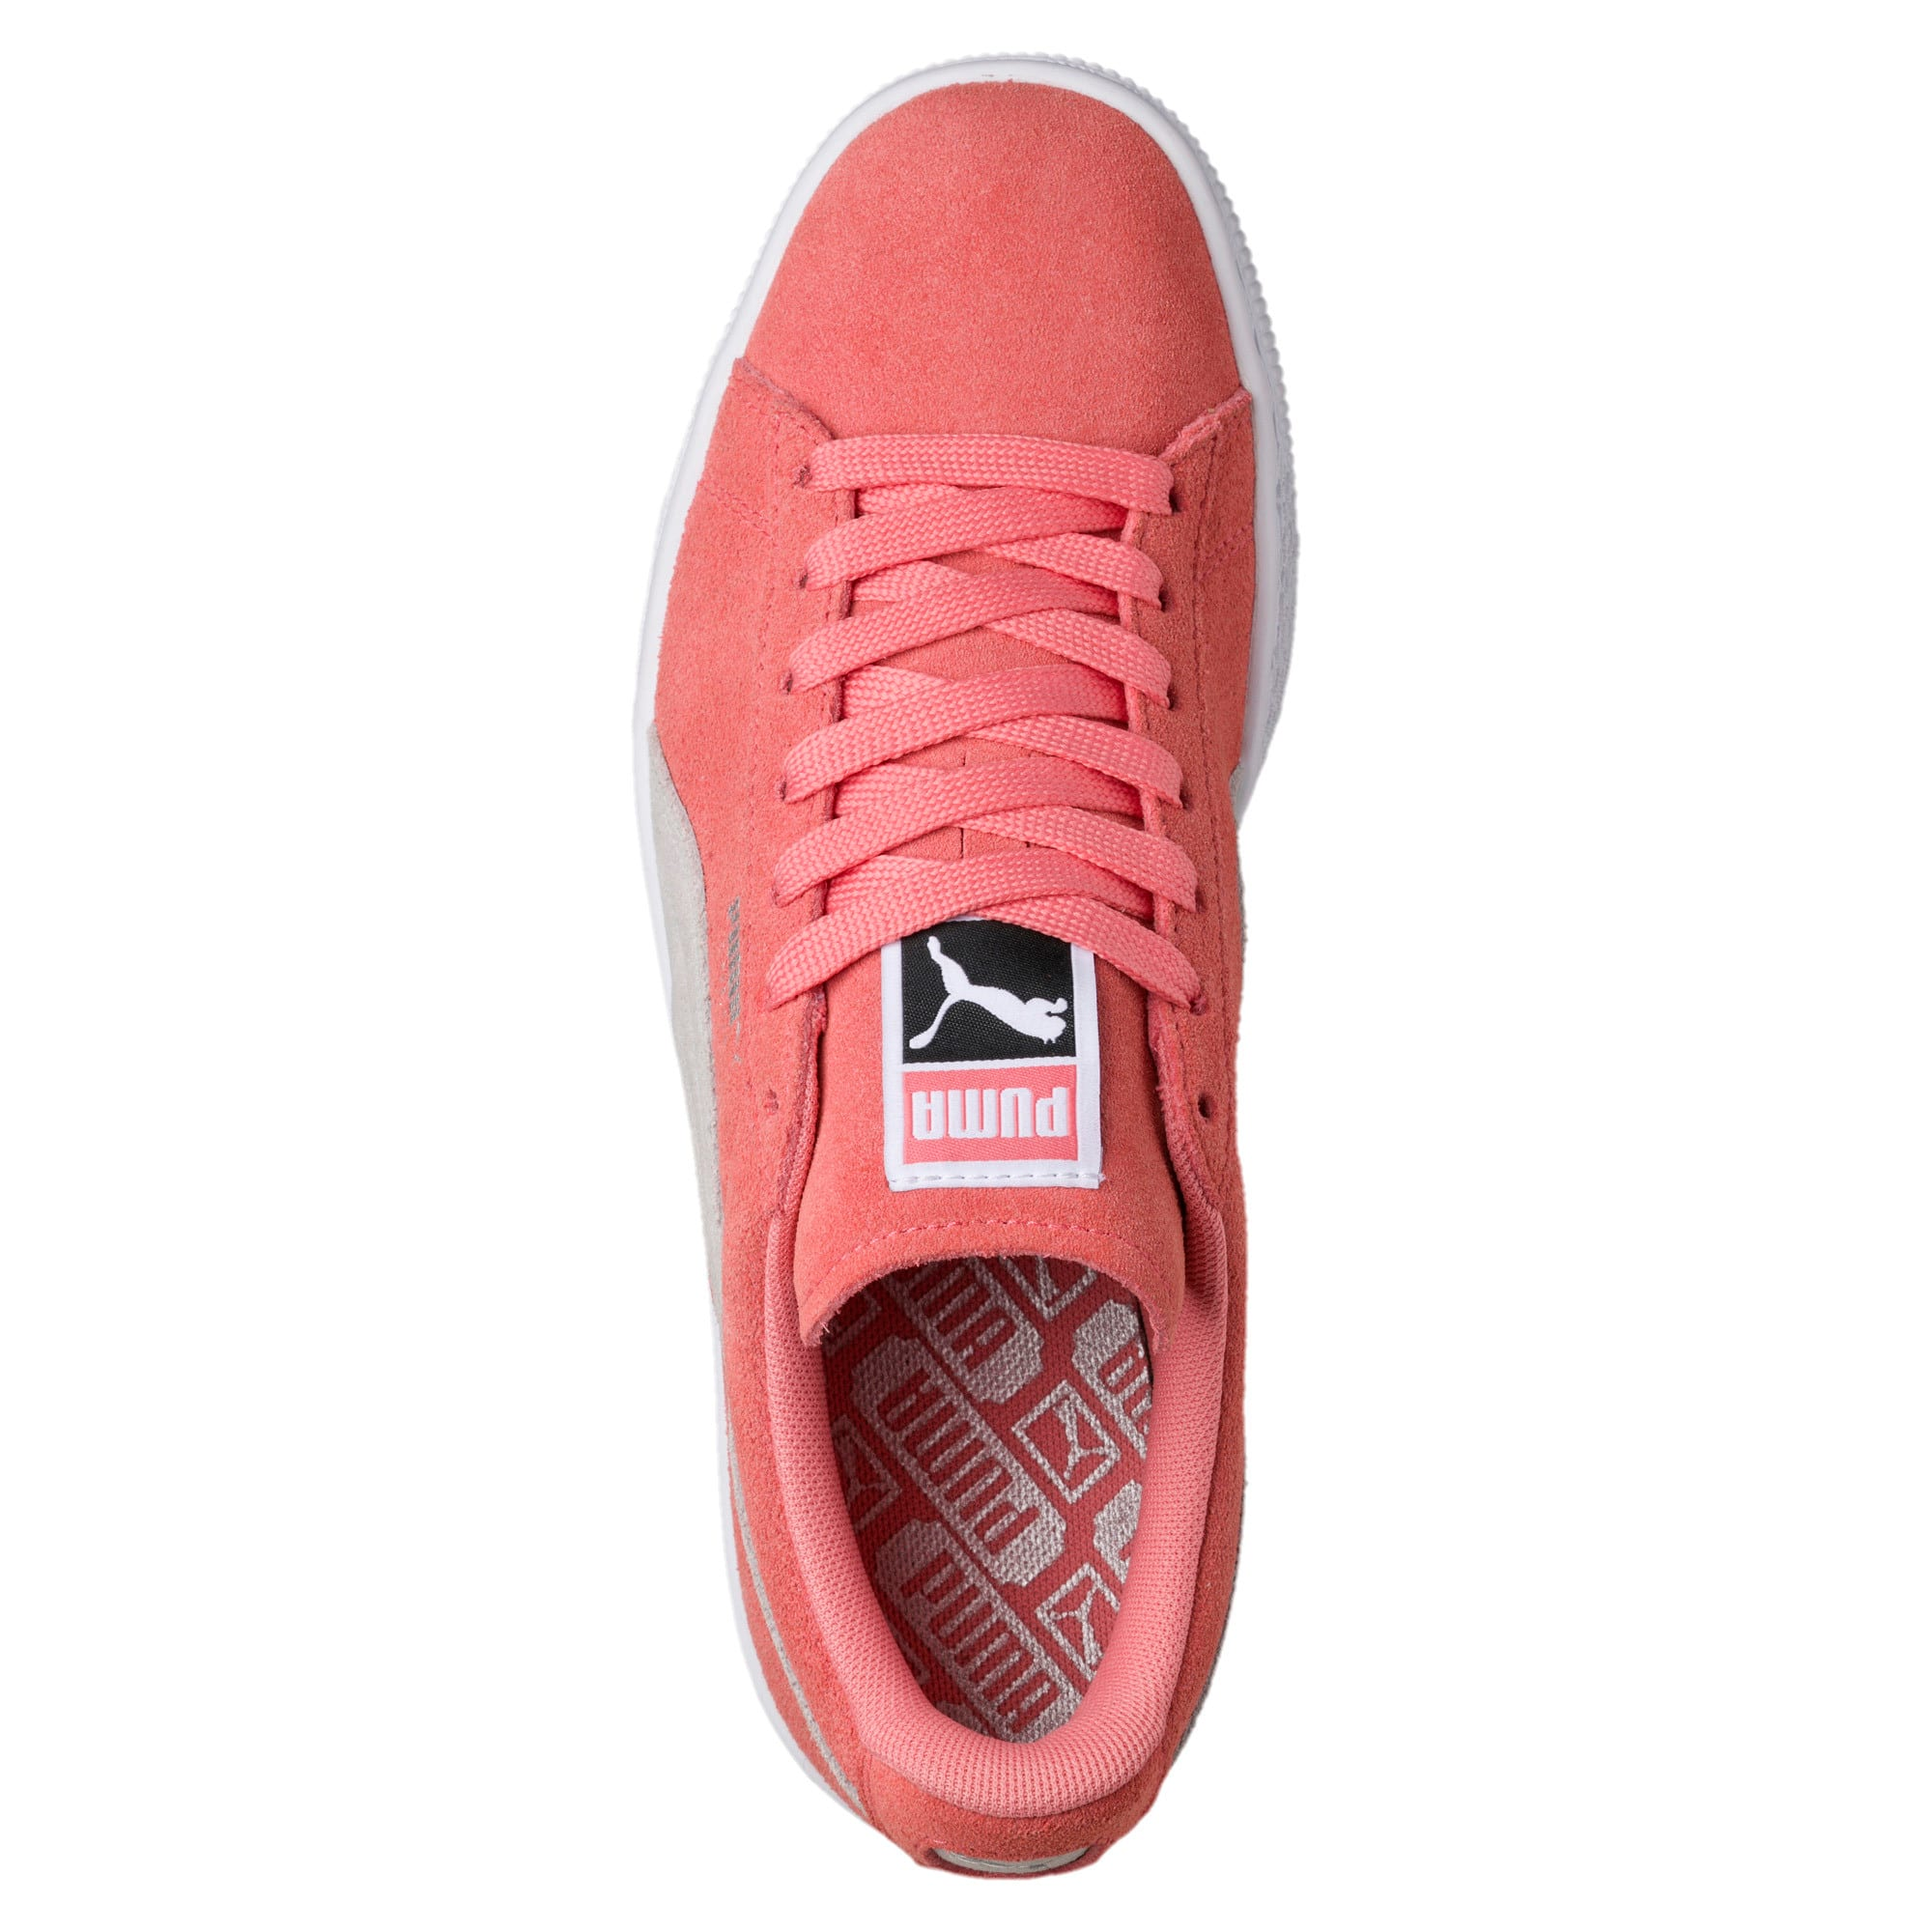 Thumbnail 5 of Suede Classic Women's Sneakers, Shell Pink-Glacier Gray, medium